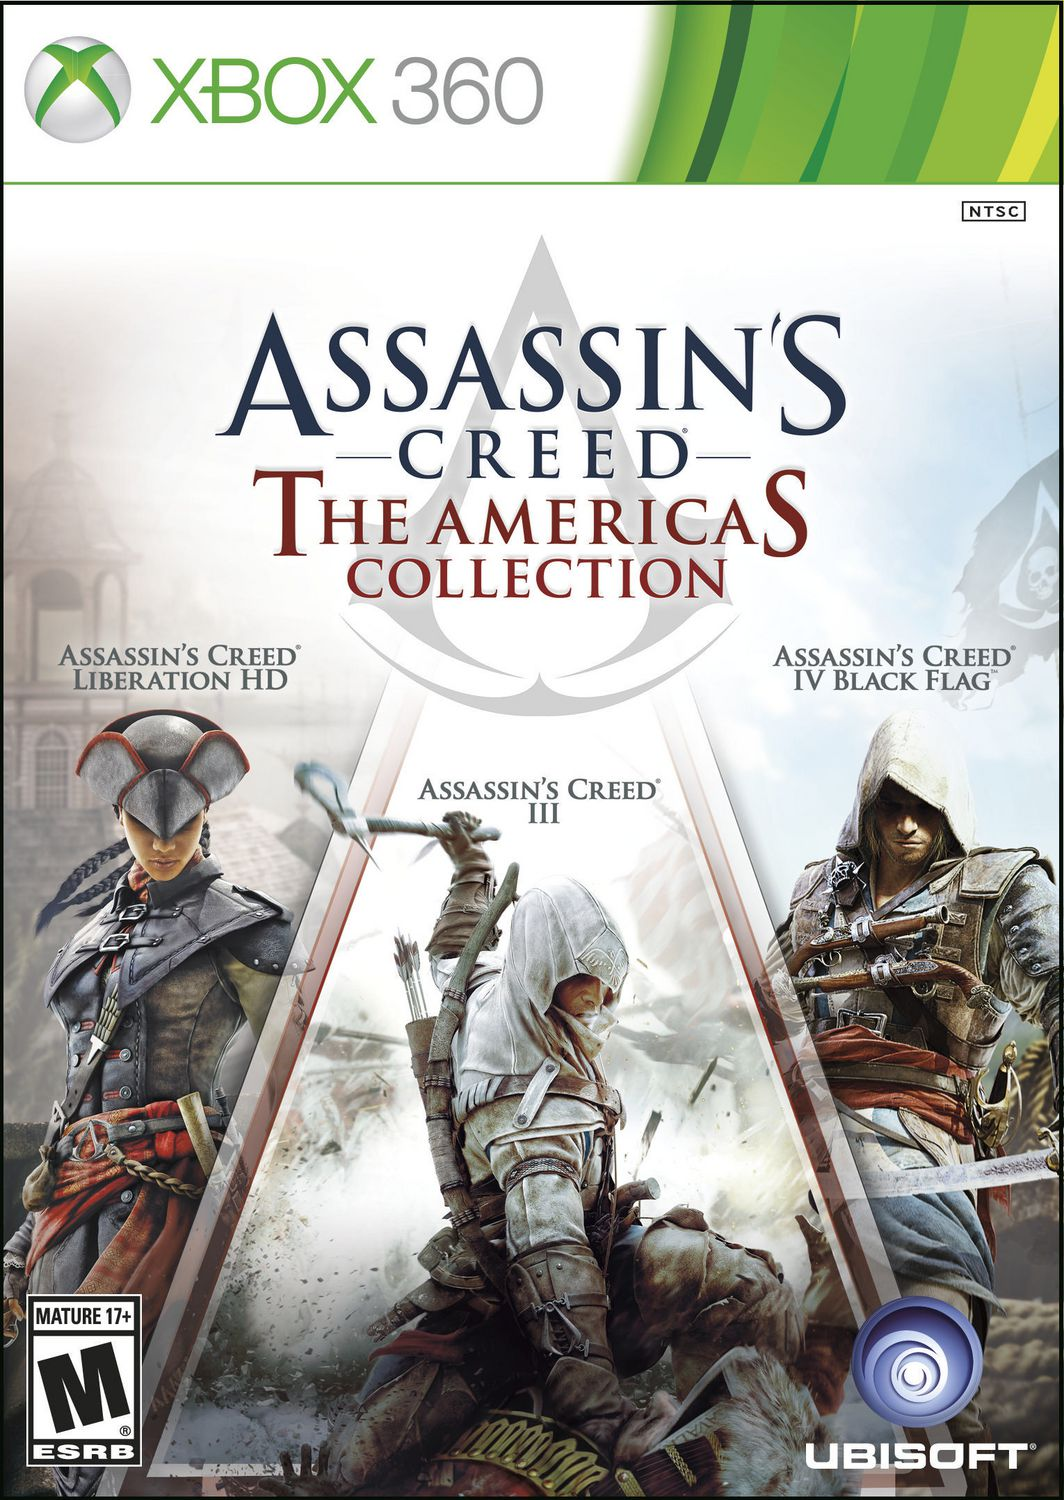 Assassin s Creed  The Americas Collection  M   Xbox 360     Assassin s Creed  The Americas Collection  M   Xbox 360